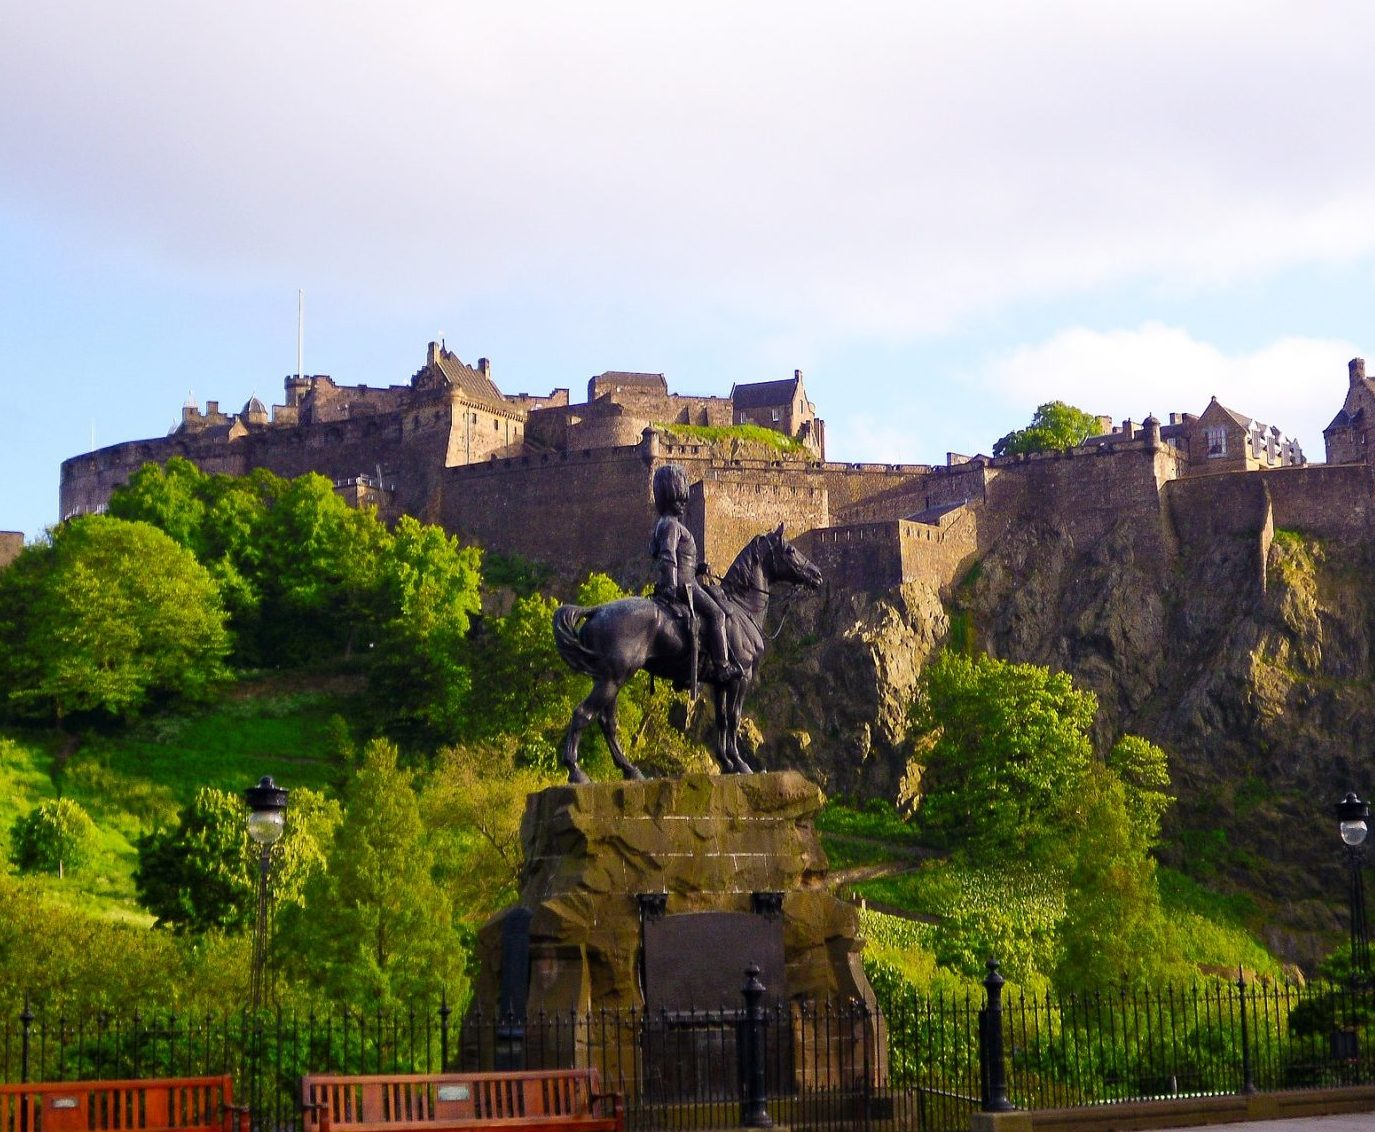 edinburgh-castle-scotland-2691043_1920